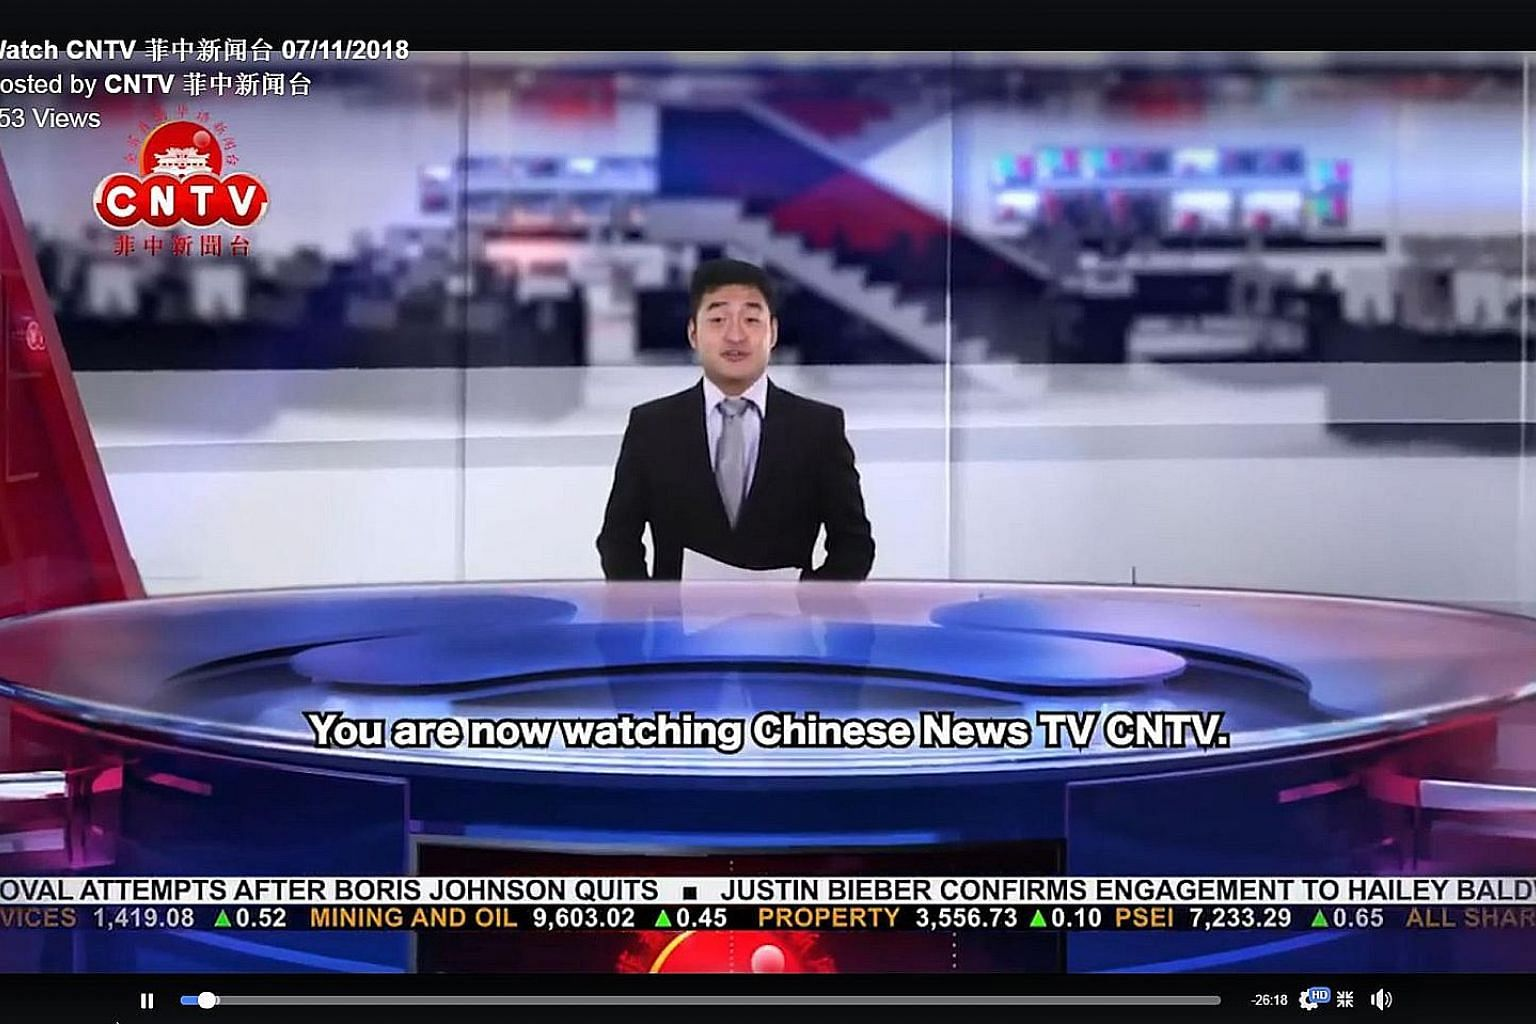 China News TV, launched by Chinatown TV last year, is a 30-minute news programme delivered in Mandarin but with English subtitles.